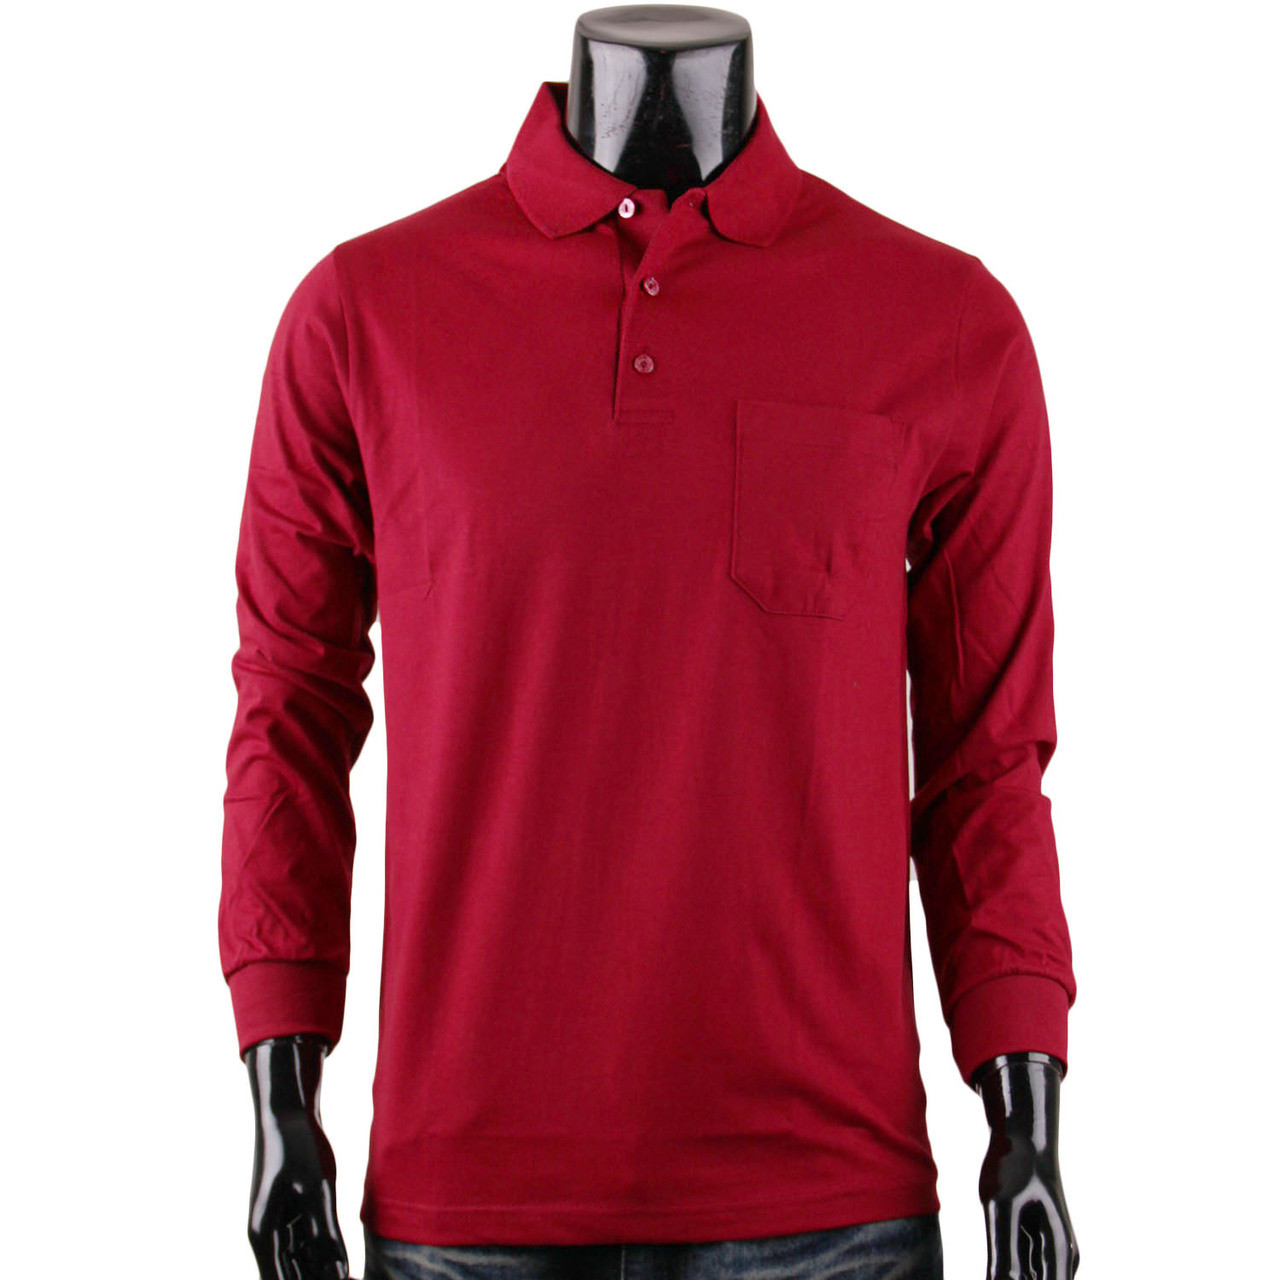 8bd33021 Bcpolo Men's Long Sleeves Cotton Solid Polo Shirt_Dark Red